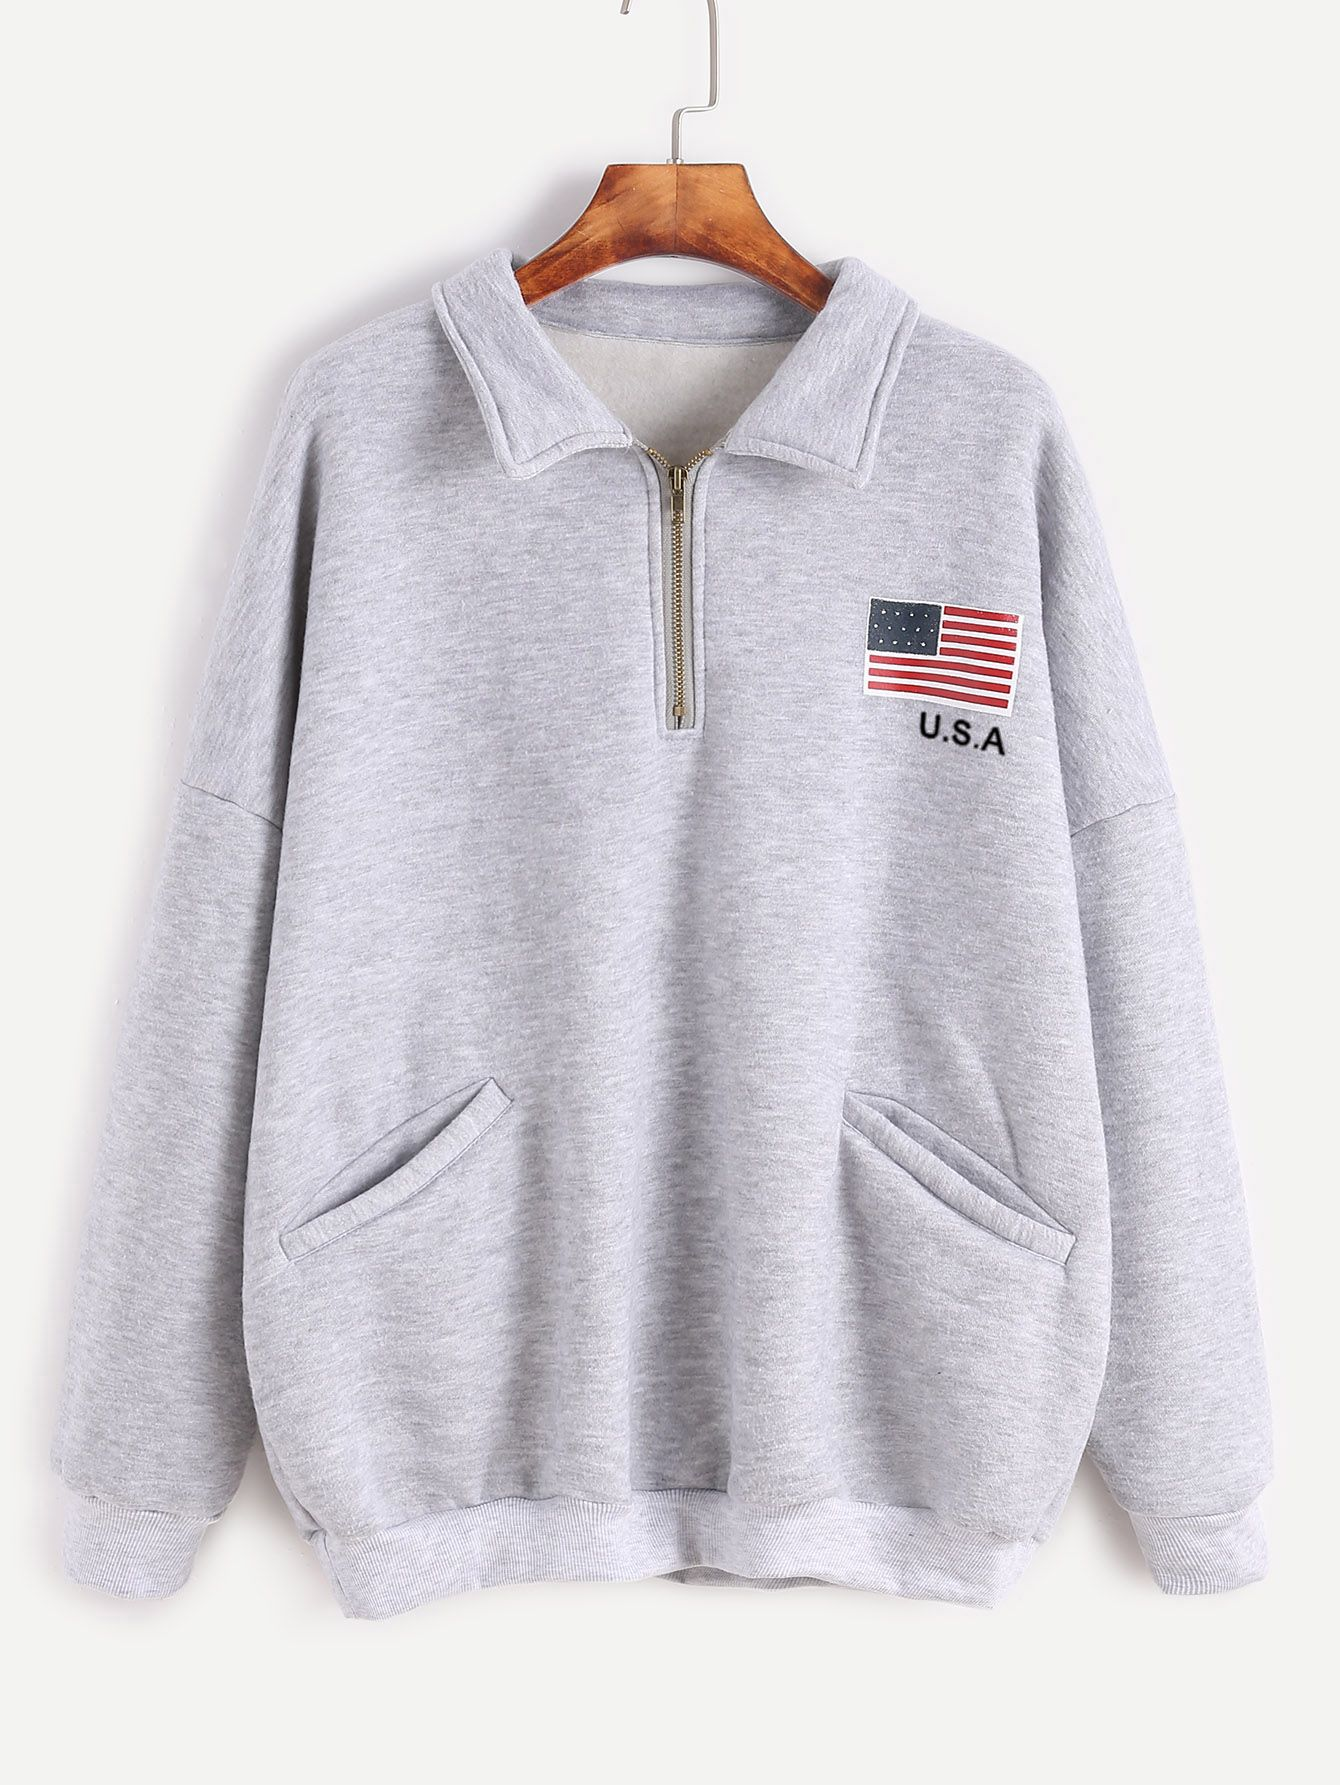 9fab1bf9953f Shop Grey American Flag Print Zip Detail Front Pocket Sweatshirt online.  SheIn offers Grey American Flag Print Zip Detail Front Pocket Sweatshirt &  more to ...